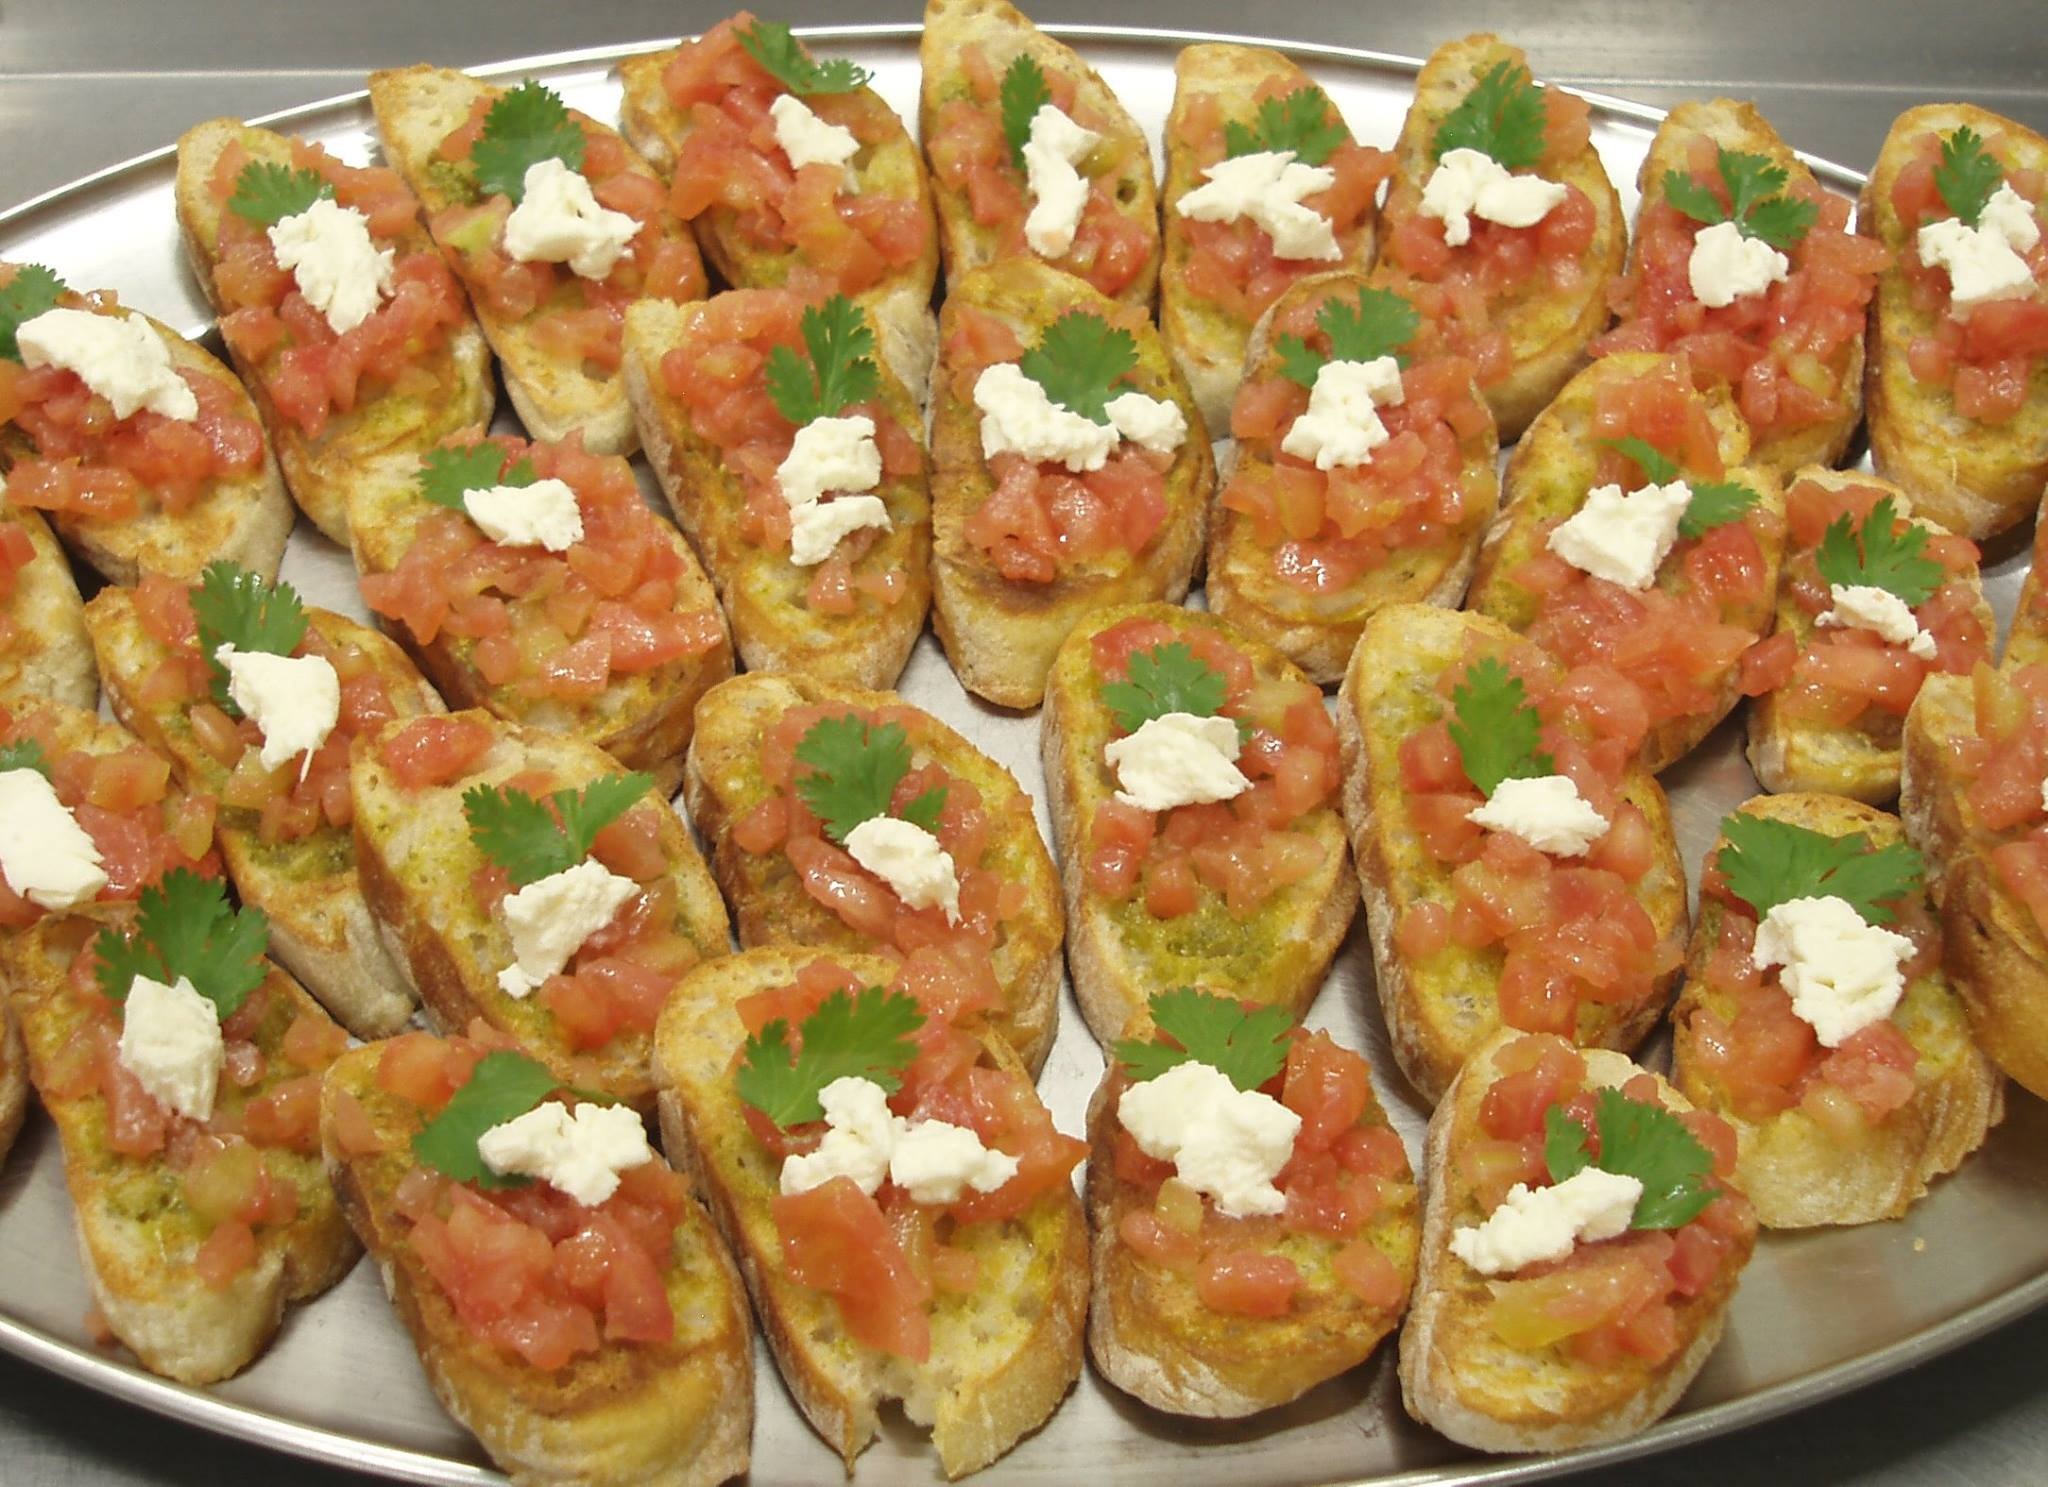 Bruschetta's rubbed with garlic topped with seasoned tomato concasse topped with cream cheese.